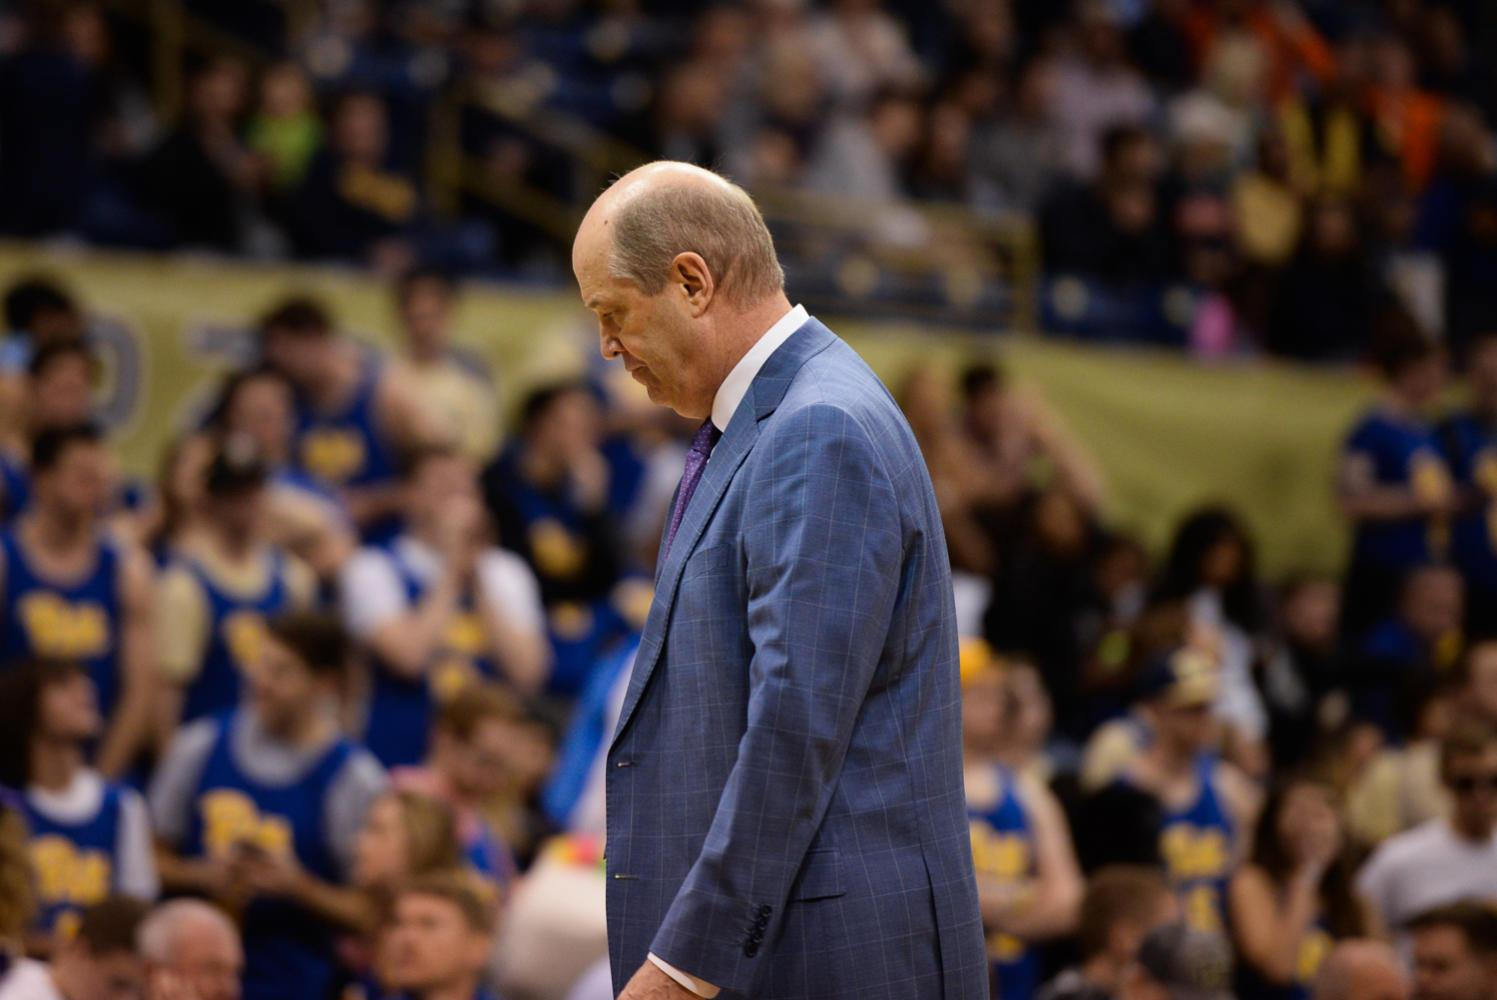 Head coach Kevin Stallings walks off the court after Pitt scored seven points in the first half against Virginia on Feb. 24. (Photo by John Hamilton / Managing Editor)